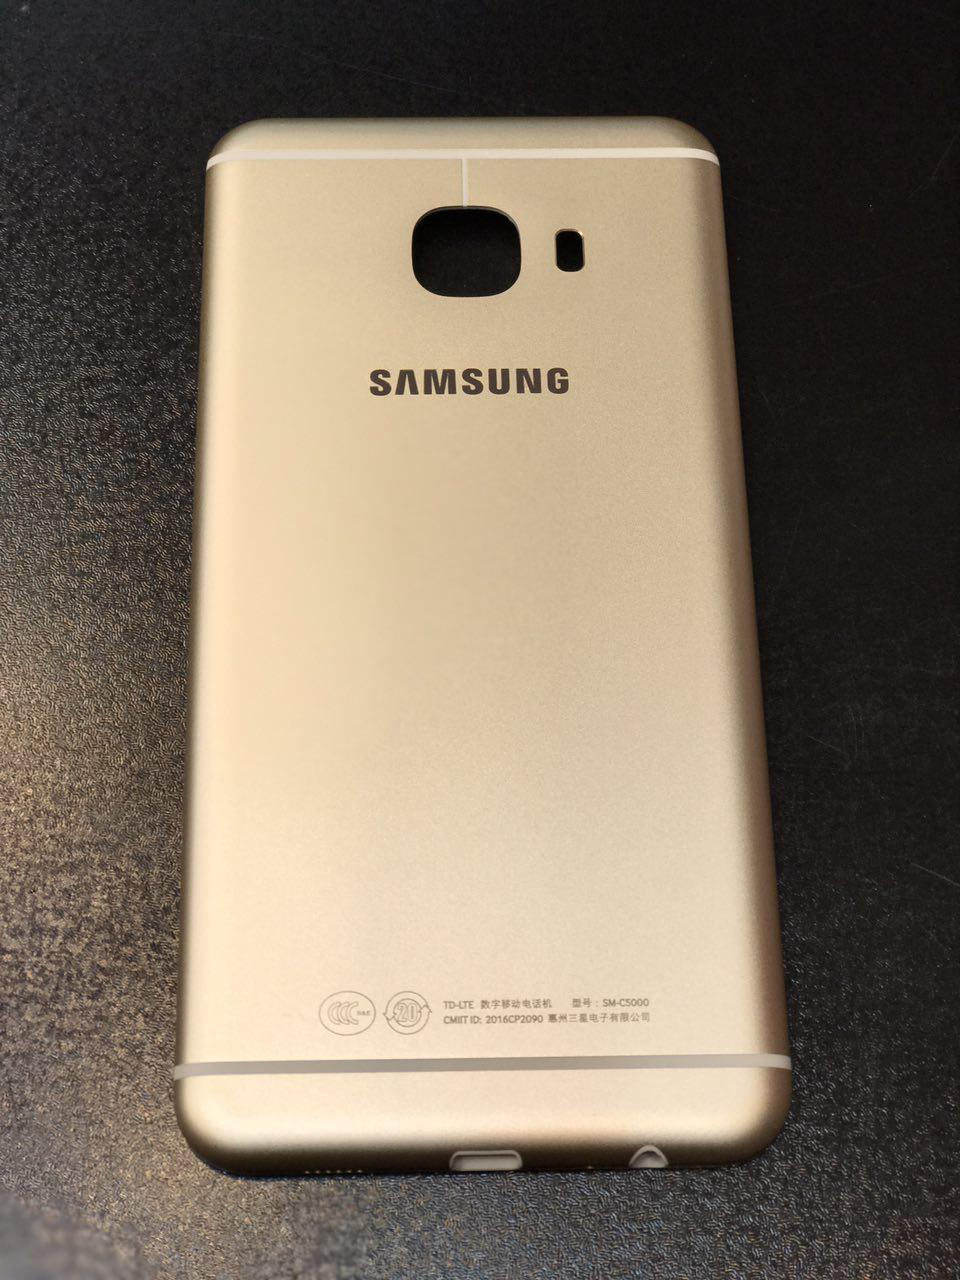 Samsung Galaxy C5 SM-C5000 Full Original Cover Housing Faceplate Body Panel Complete Parts